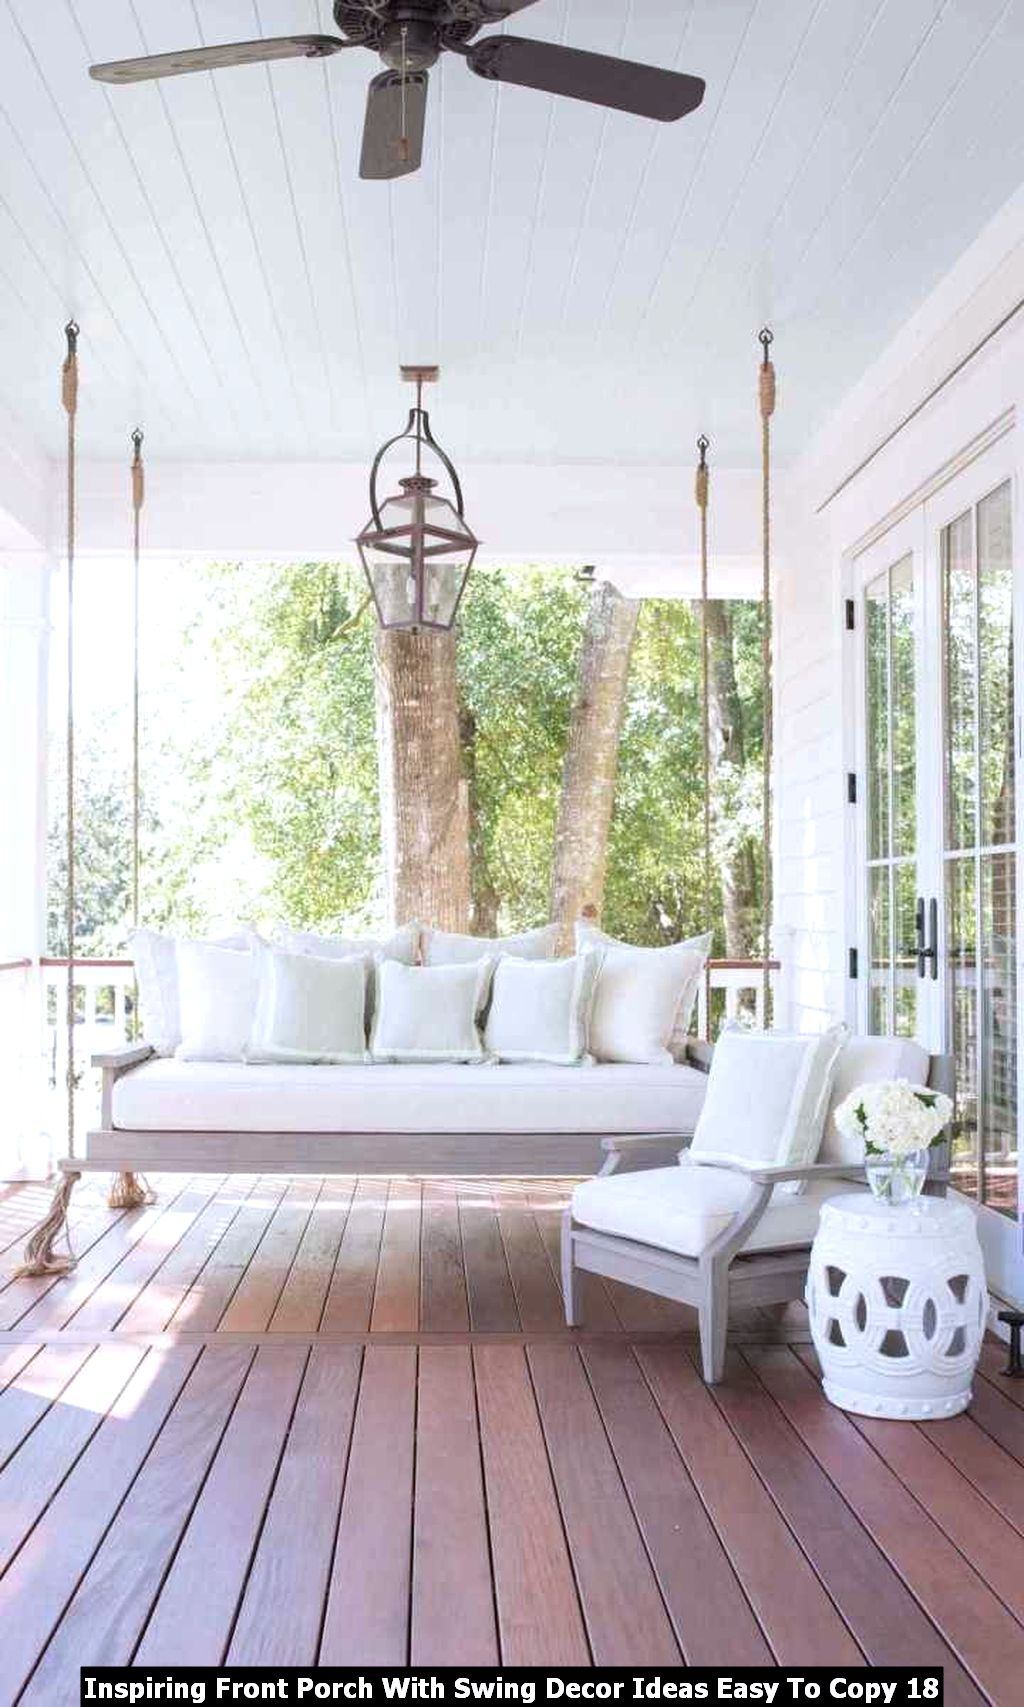 Inspiring Front Porch With Swing Decor Ideas Easy To Copy 18